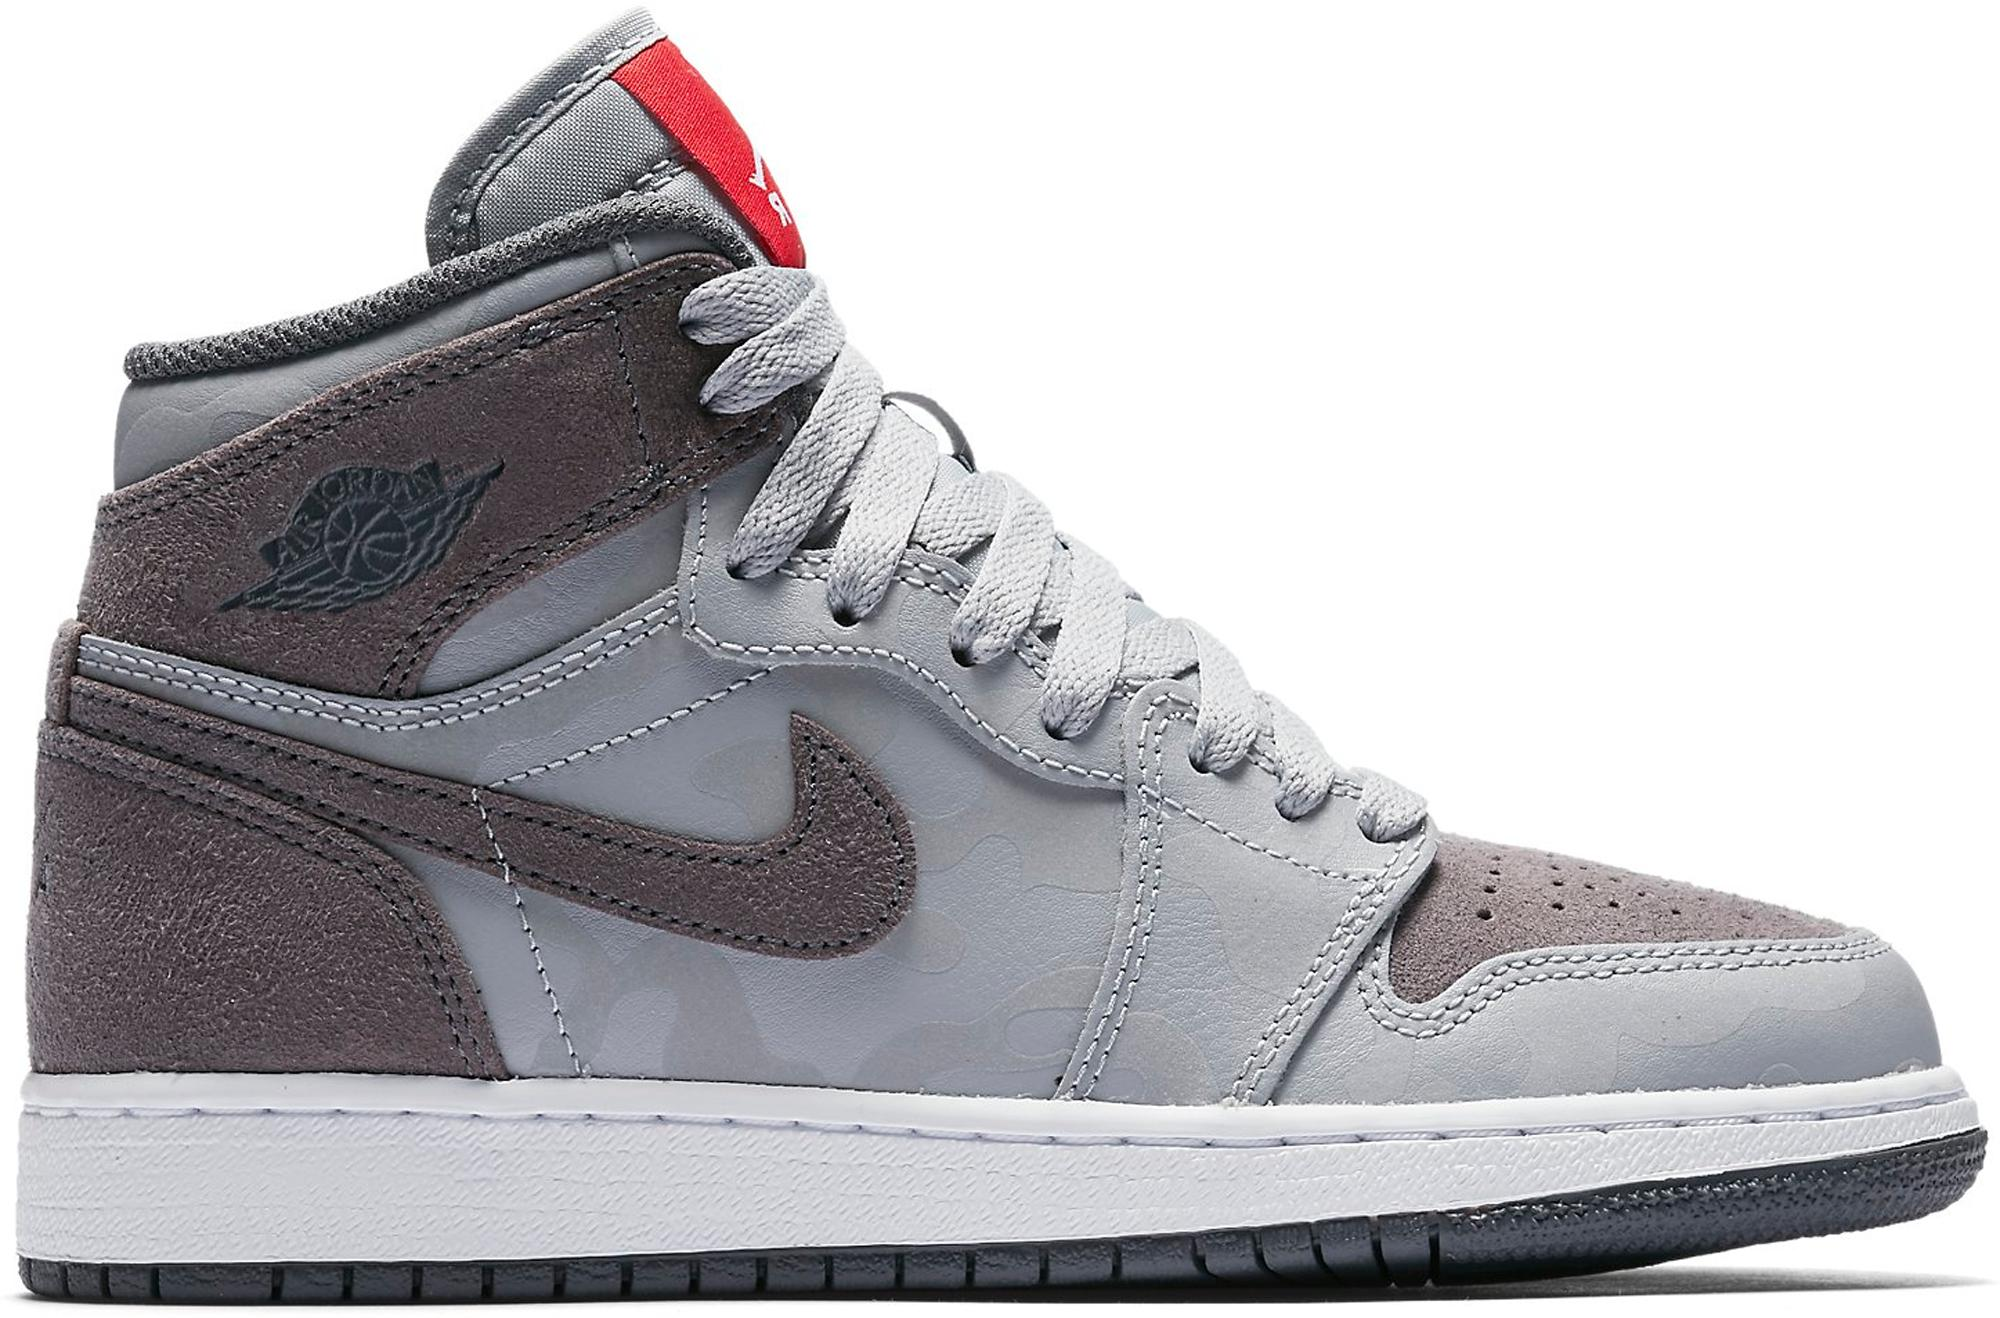 482e0954 Nike 1 Retro High Camo 3m Wolf Grey (gs) in Gray for Men - Lyst